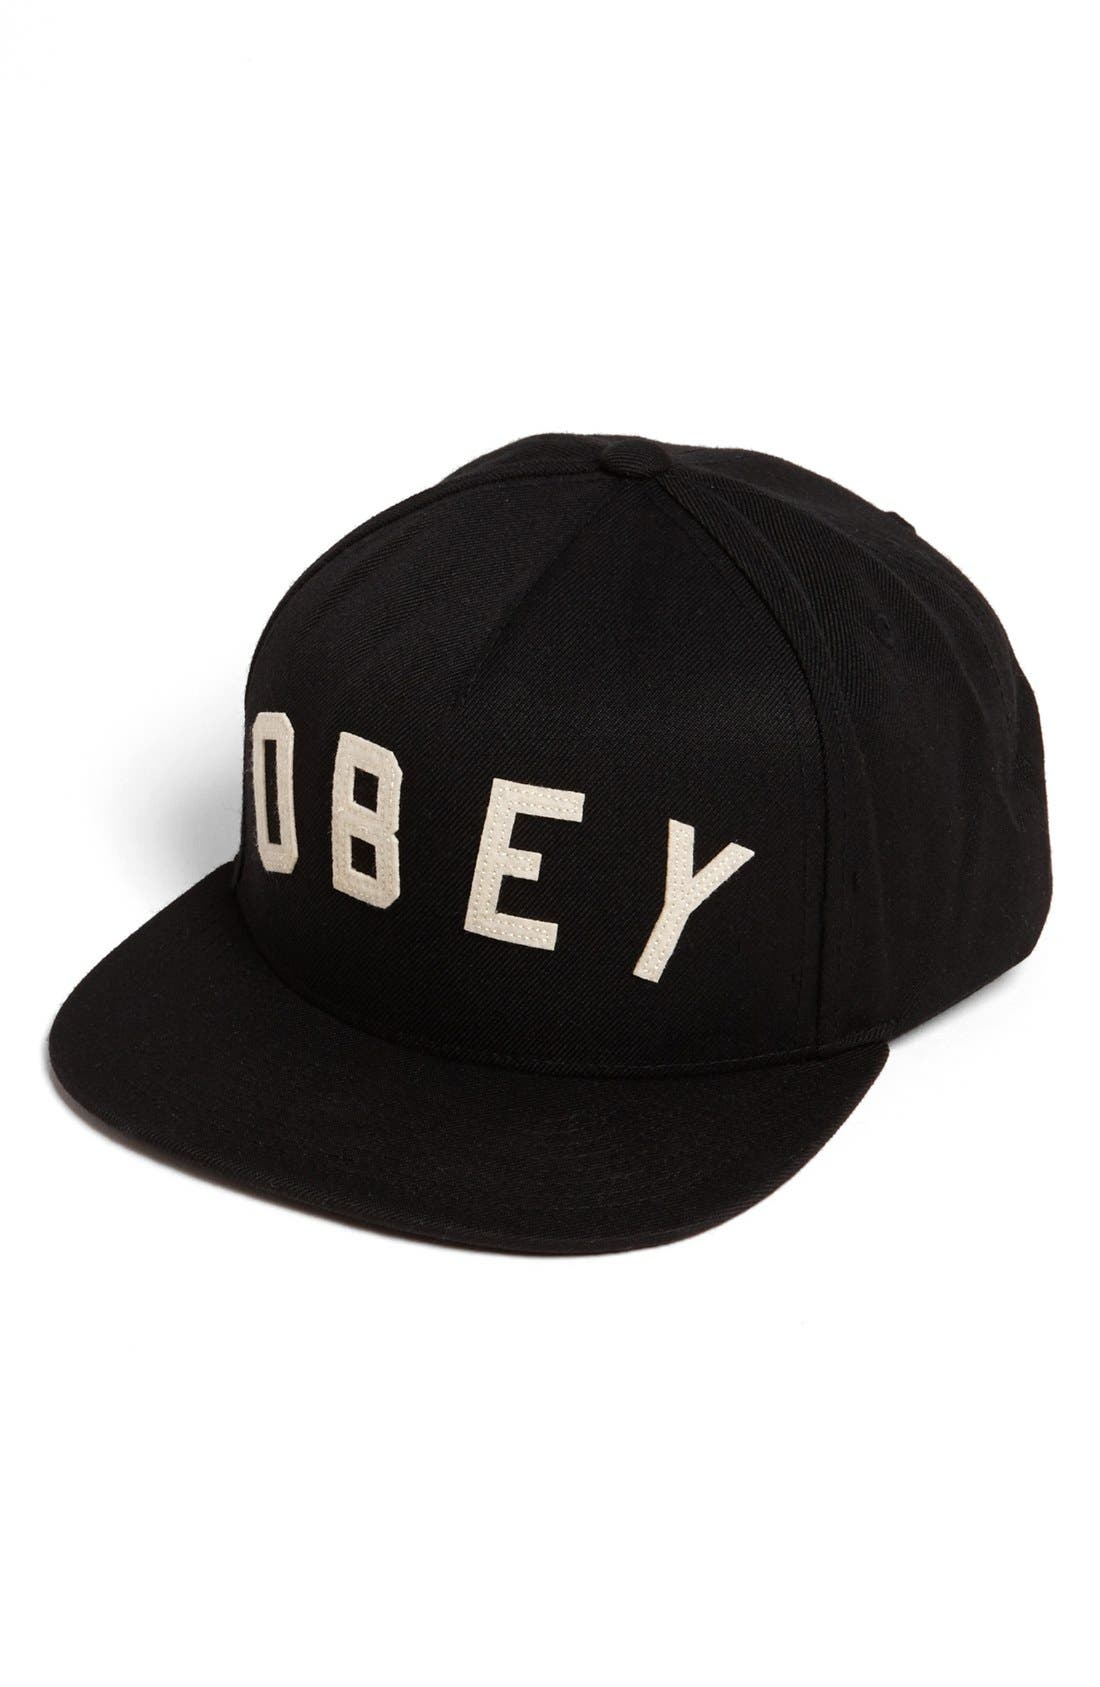 Alternate Image 1 Selected - Obey 'Core' Snapback Baseball Cap